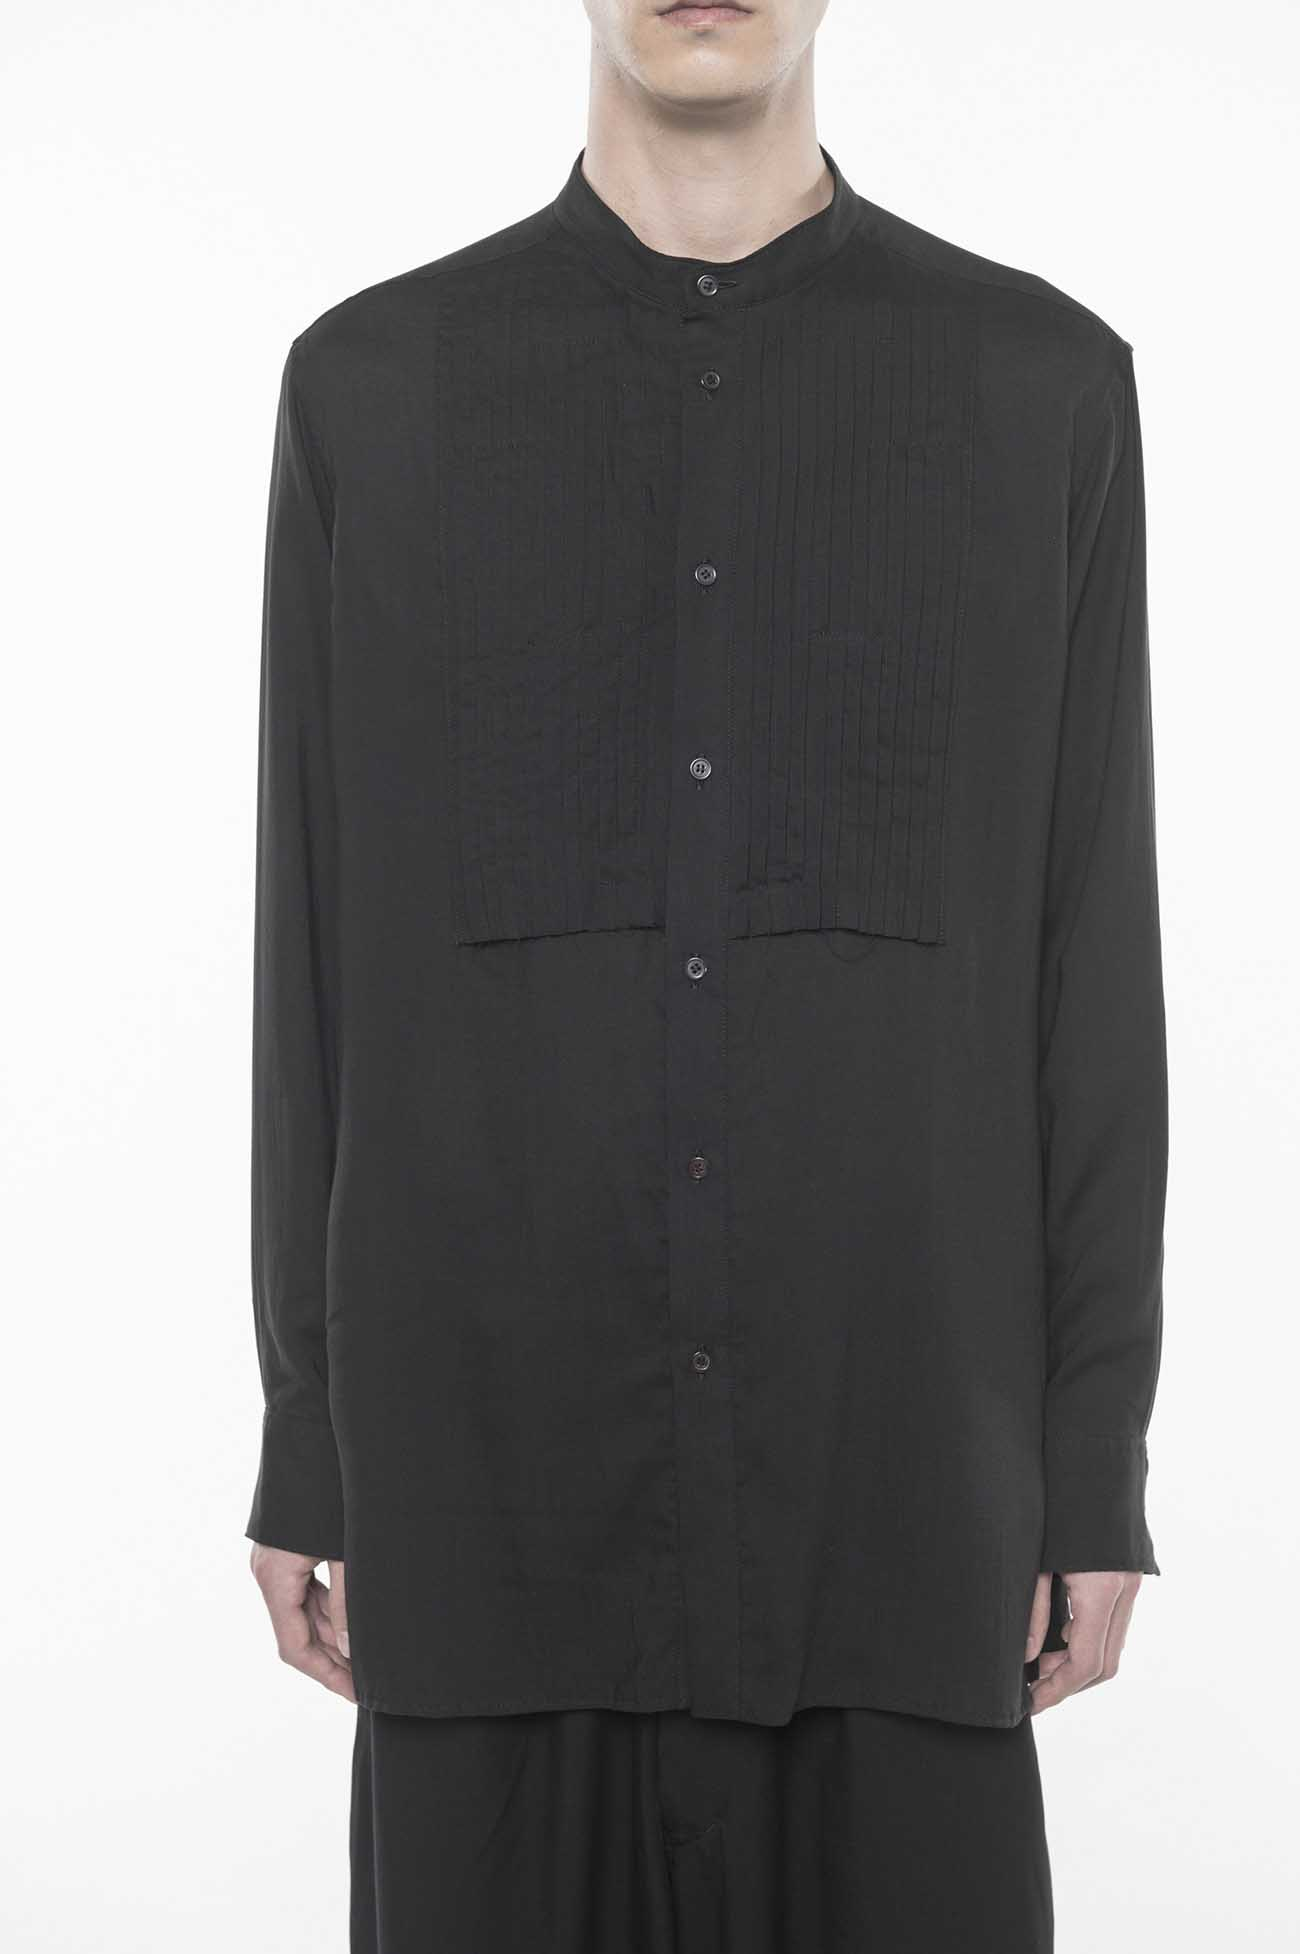 Tencel/Loan Pin Tack Shirt